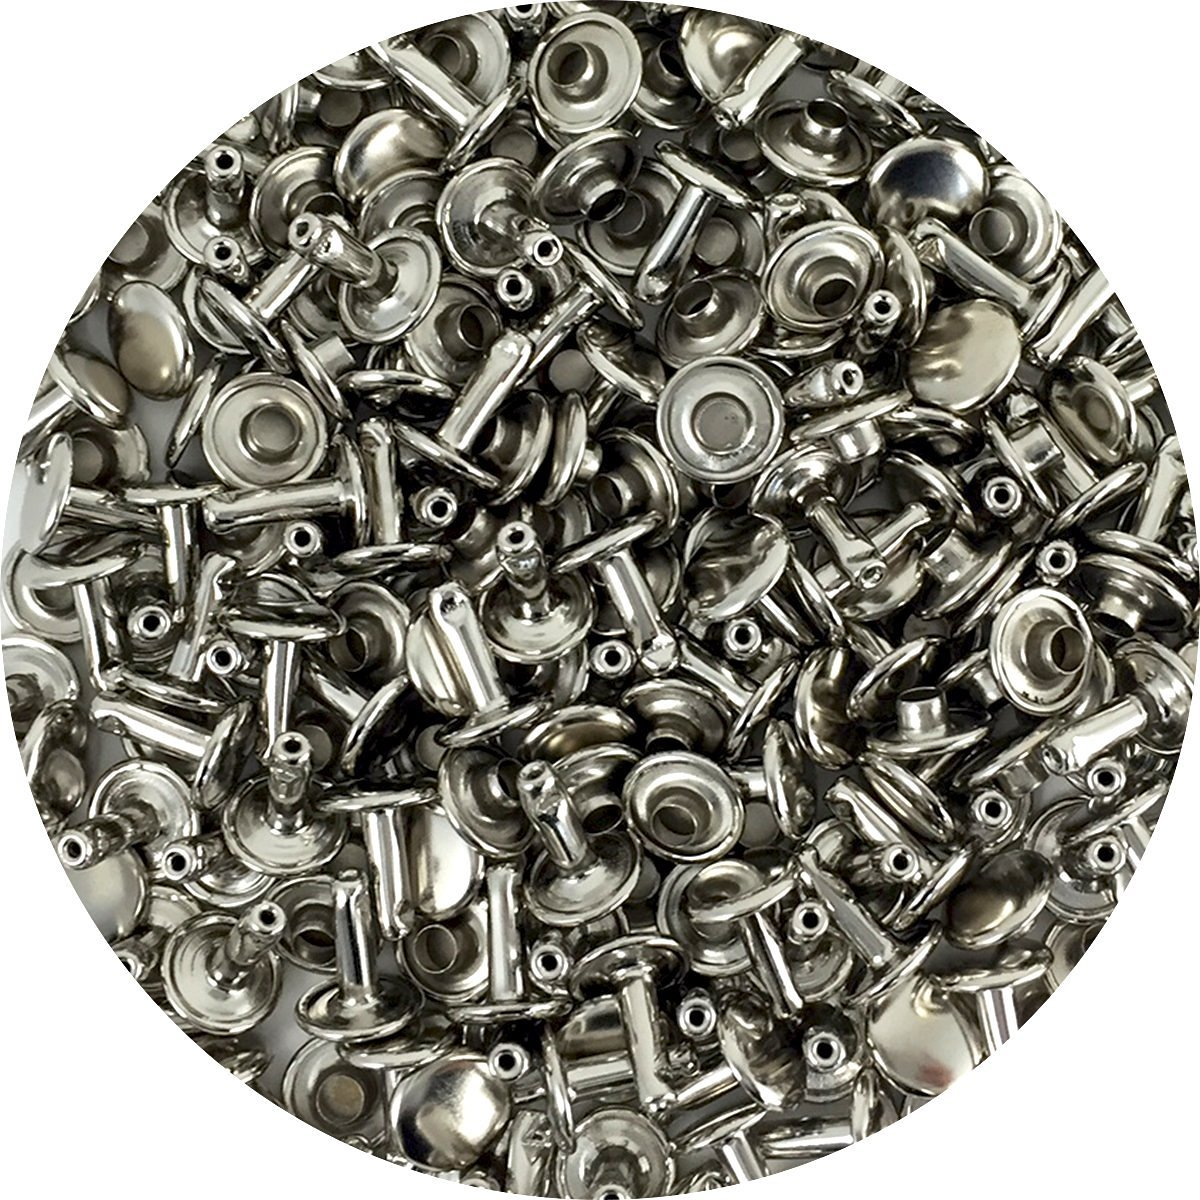 Springfield Leather Company's Nickel Plate Medium Double Cap Rivets 1000pk